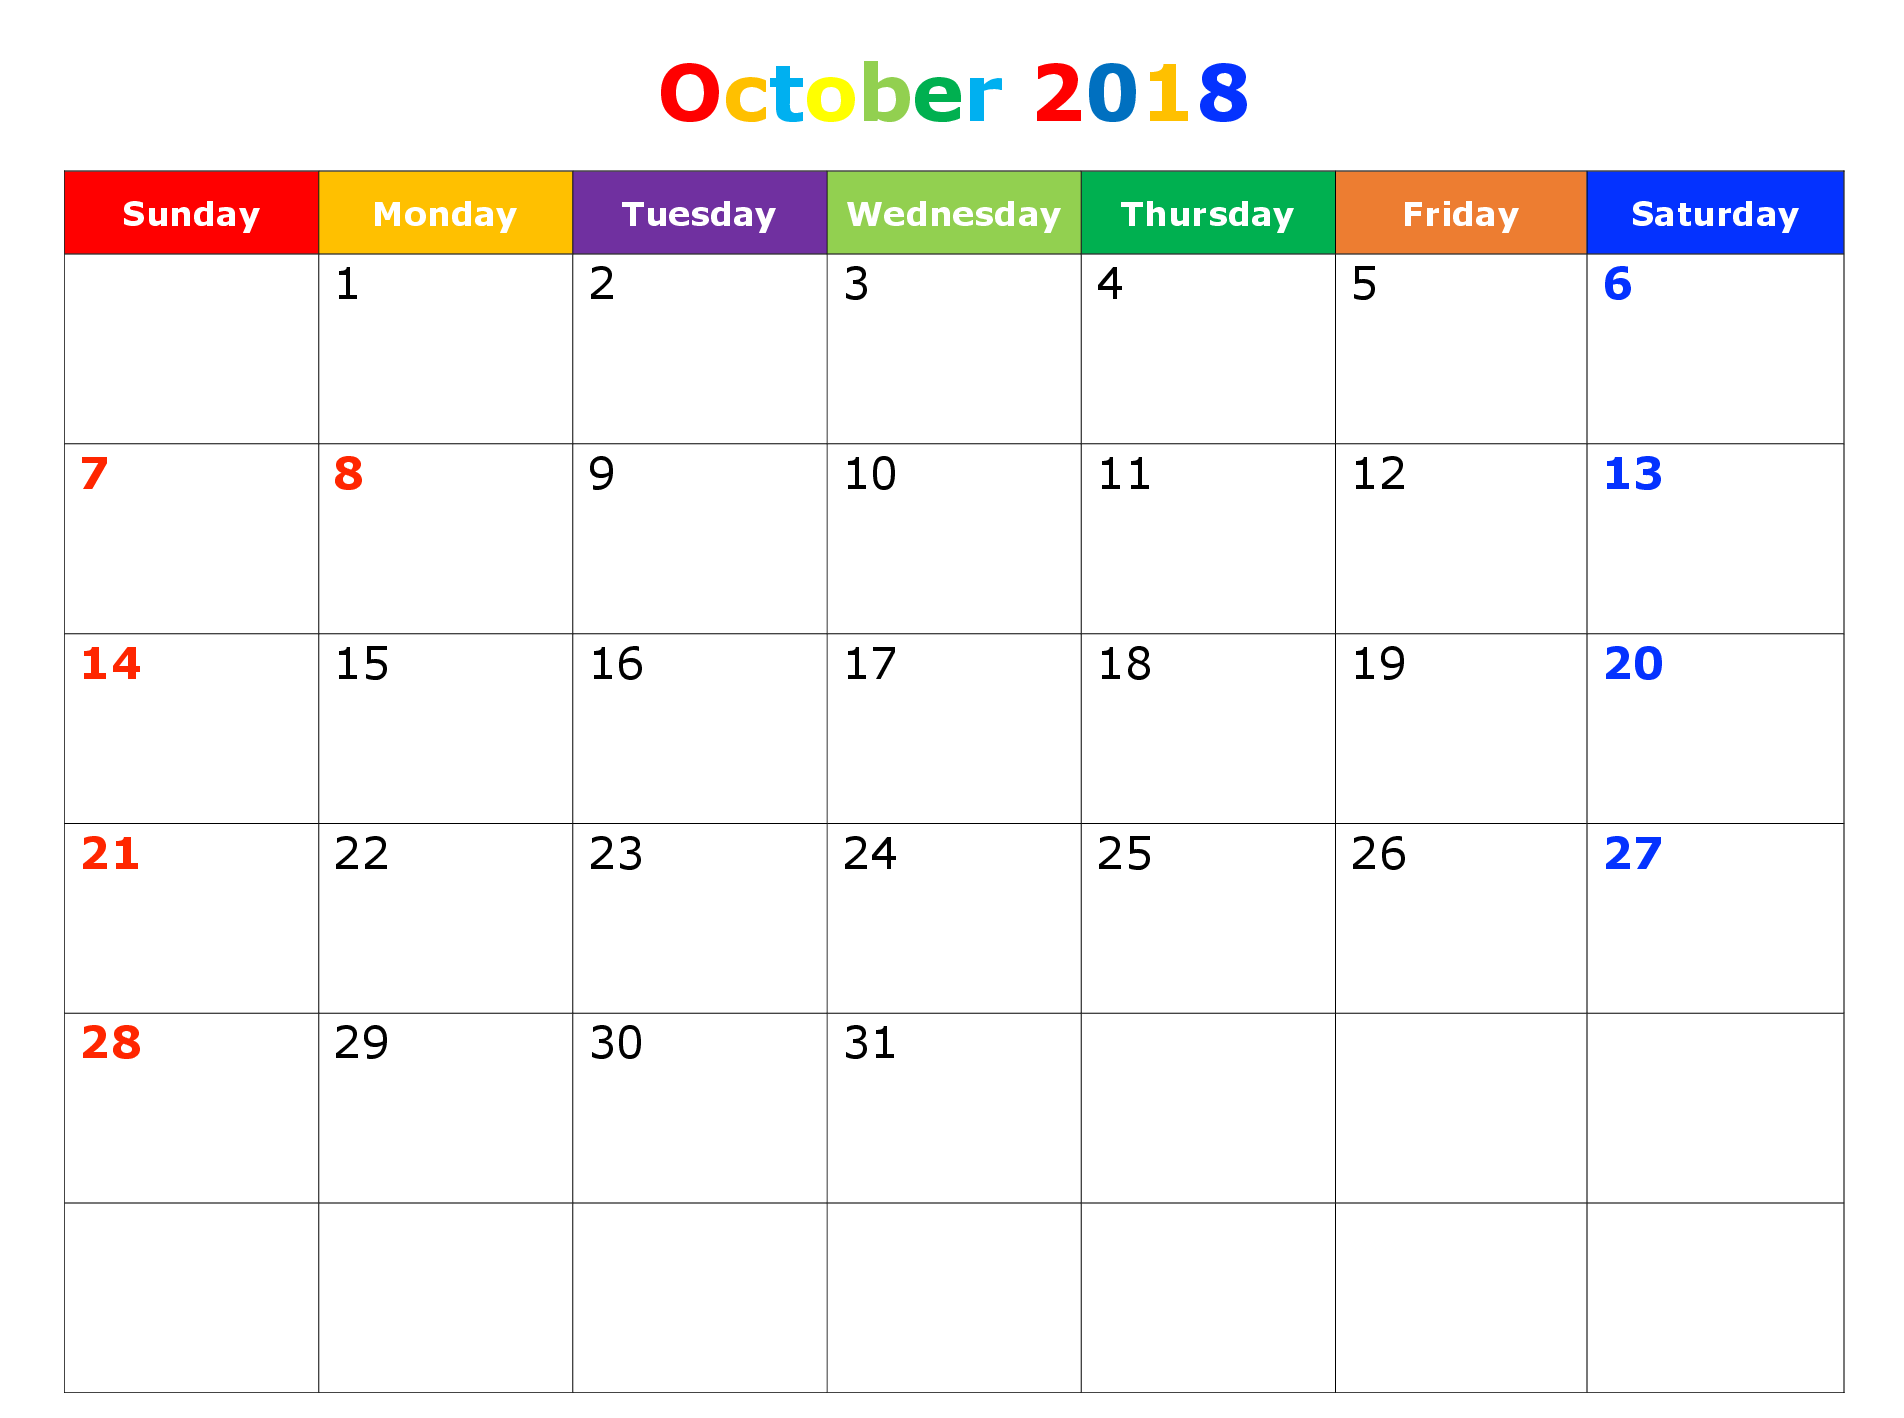 October 2018 Printable Calendar Decorative Template